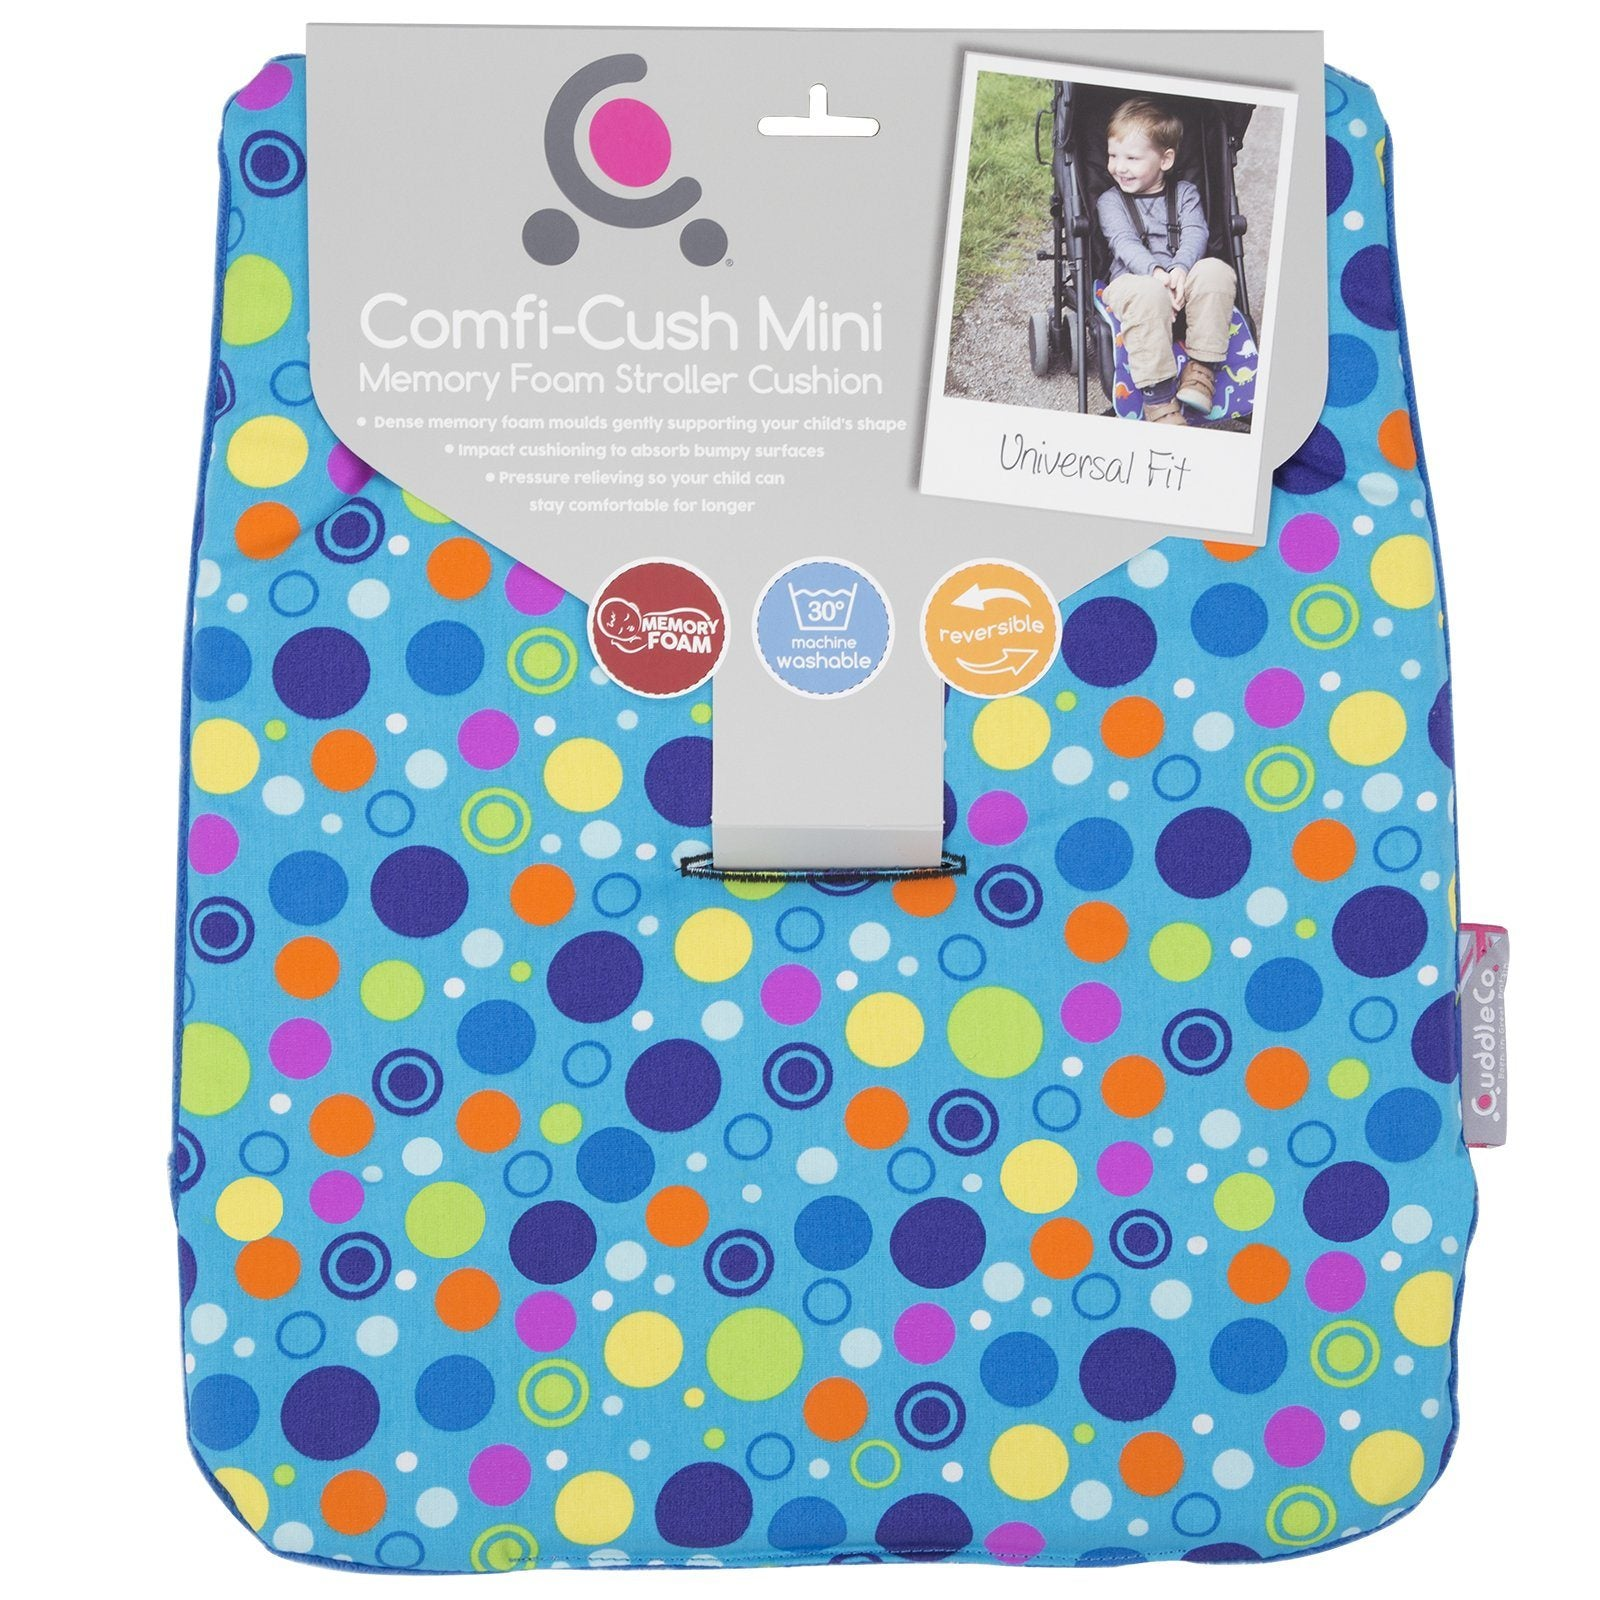 Comfi-Cush Mini Memory Foam Stroller Cushion - Spot the Dot On The Go cuddleco